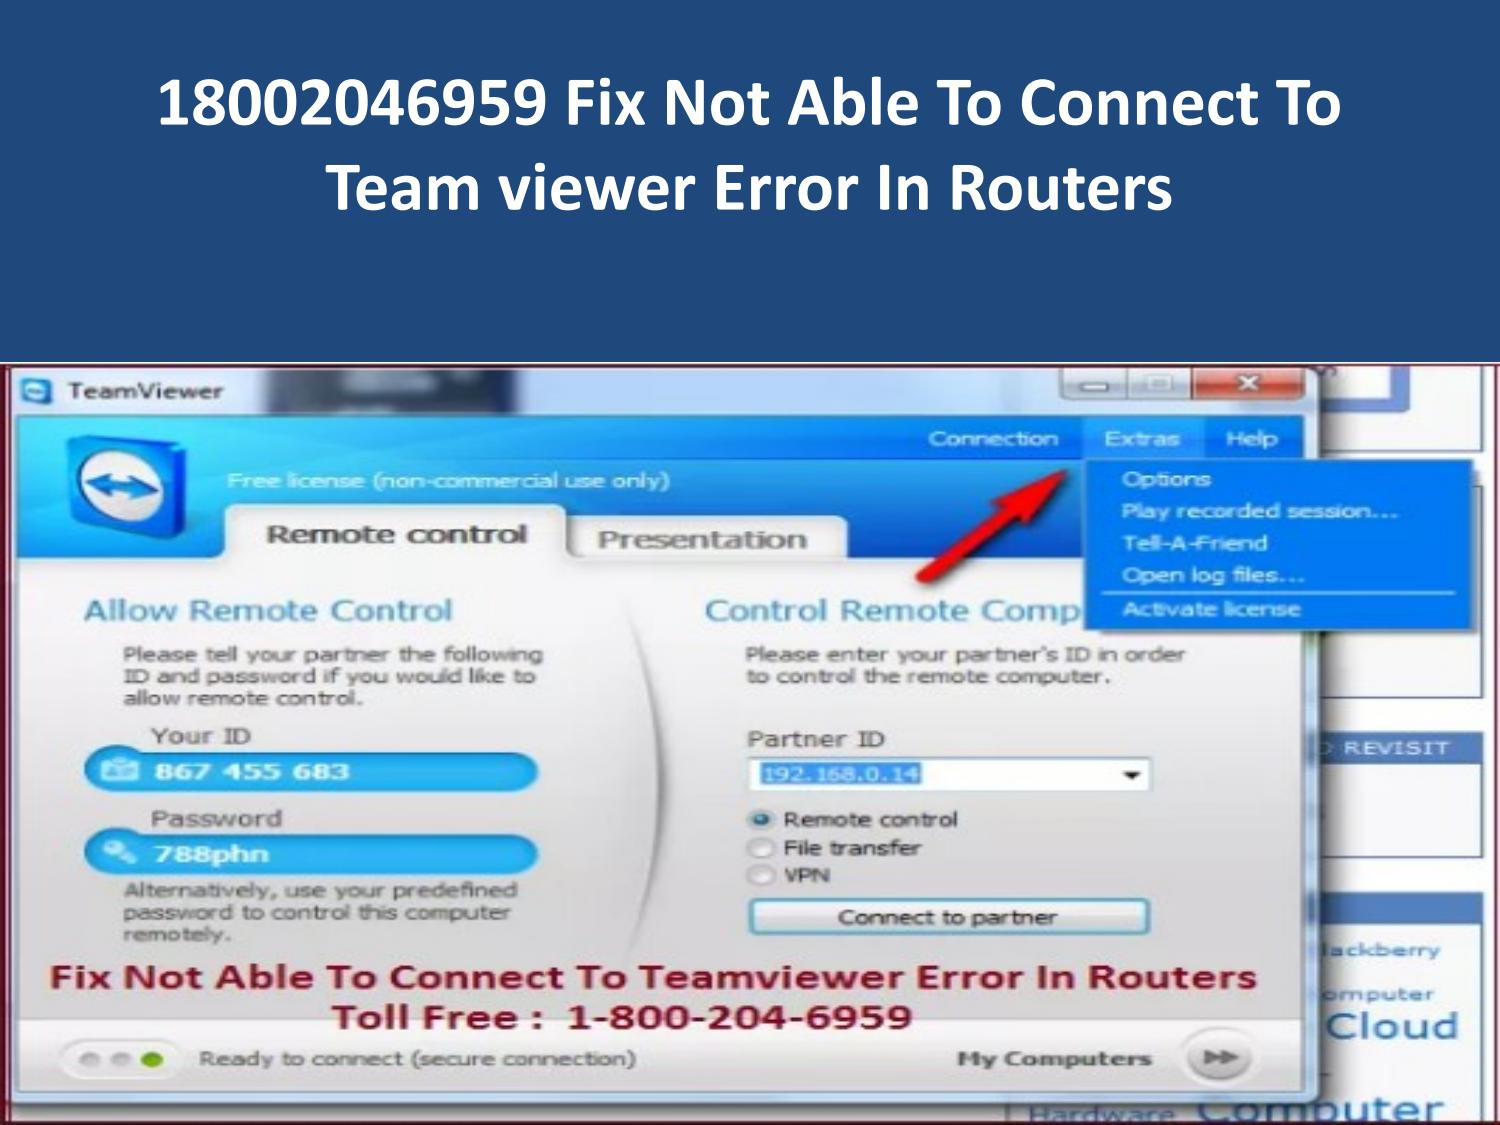 18002046959 Fix Not Able To Connect To Team viewer Error In